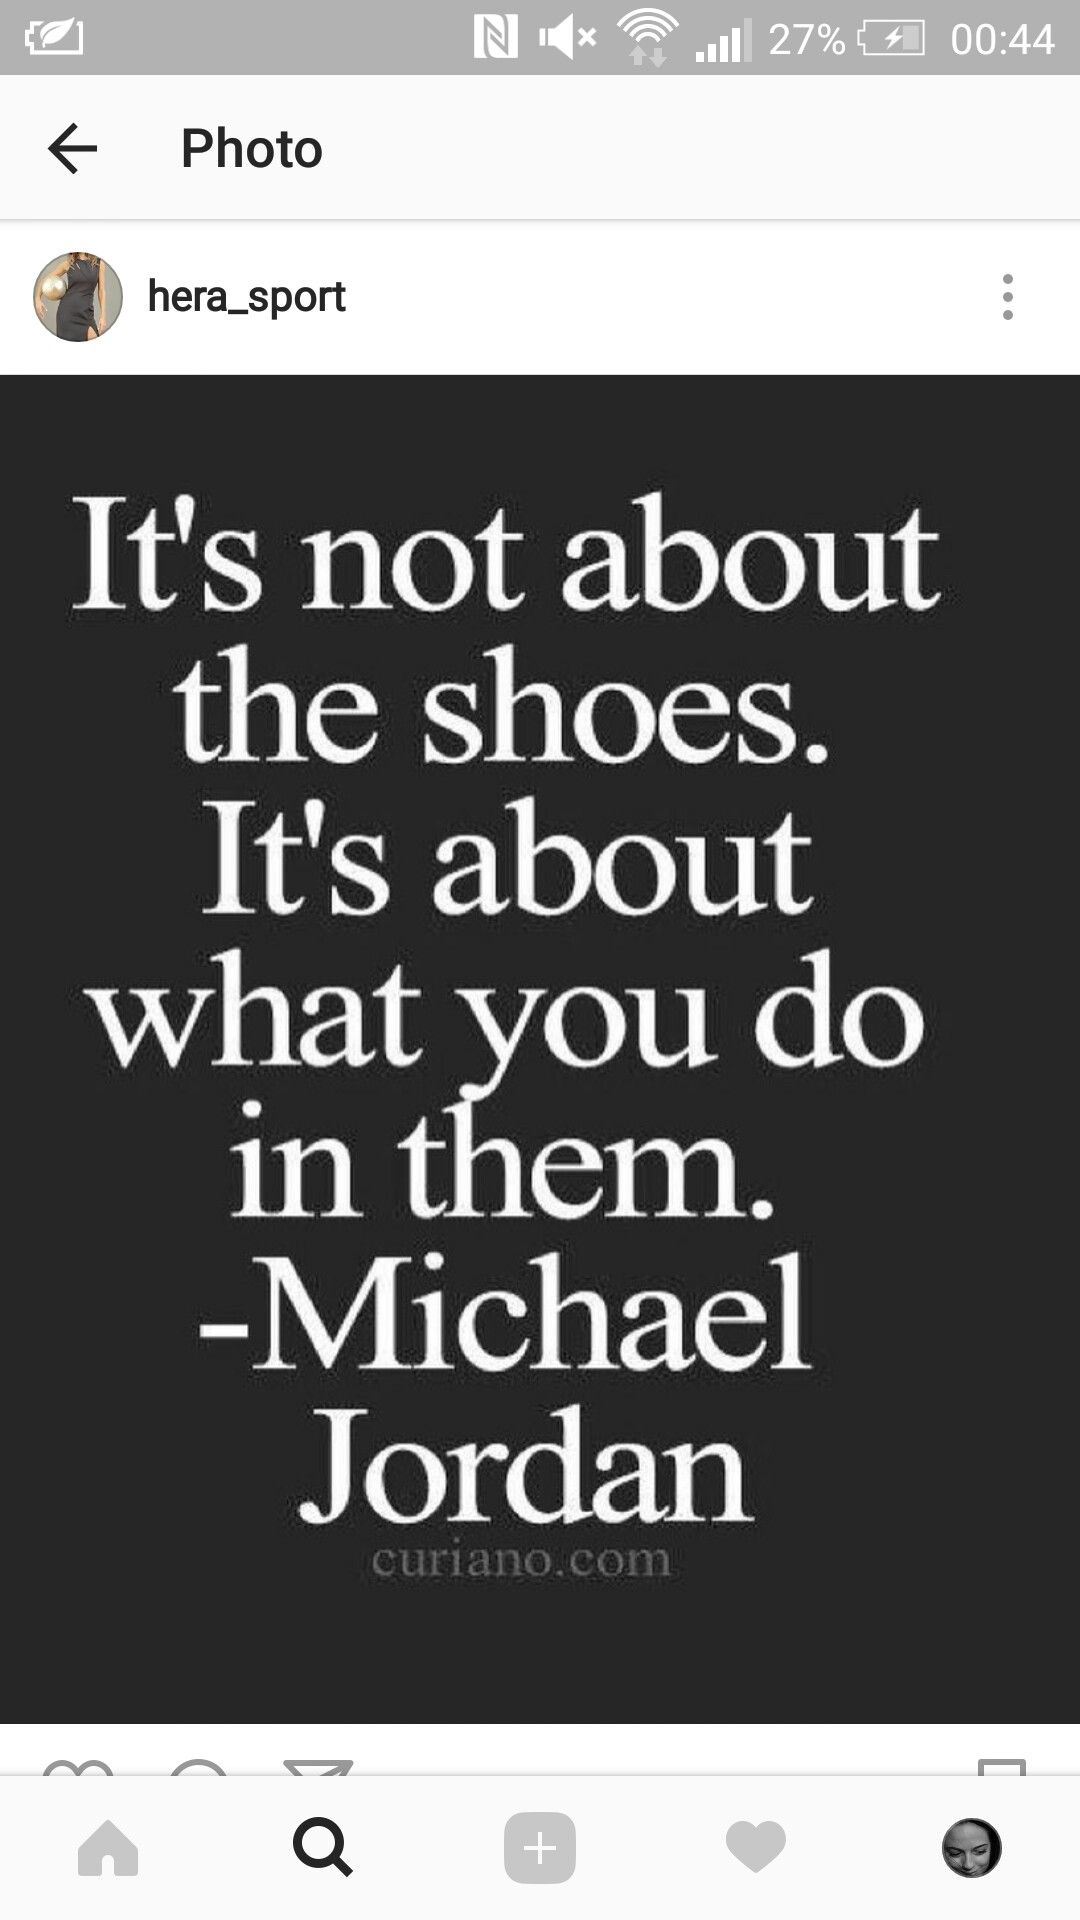 Many Talented Fashion Designers Could Have Said This But That It